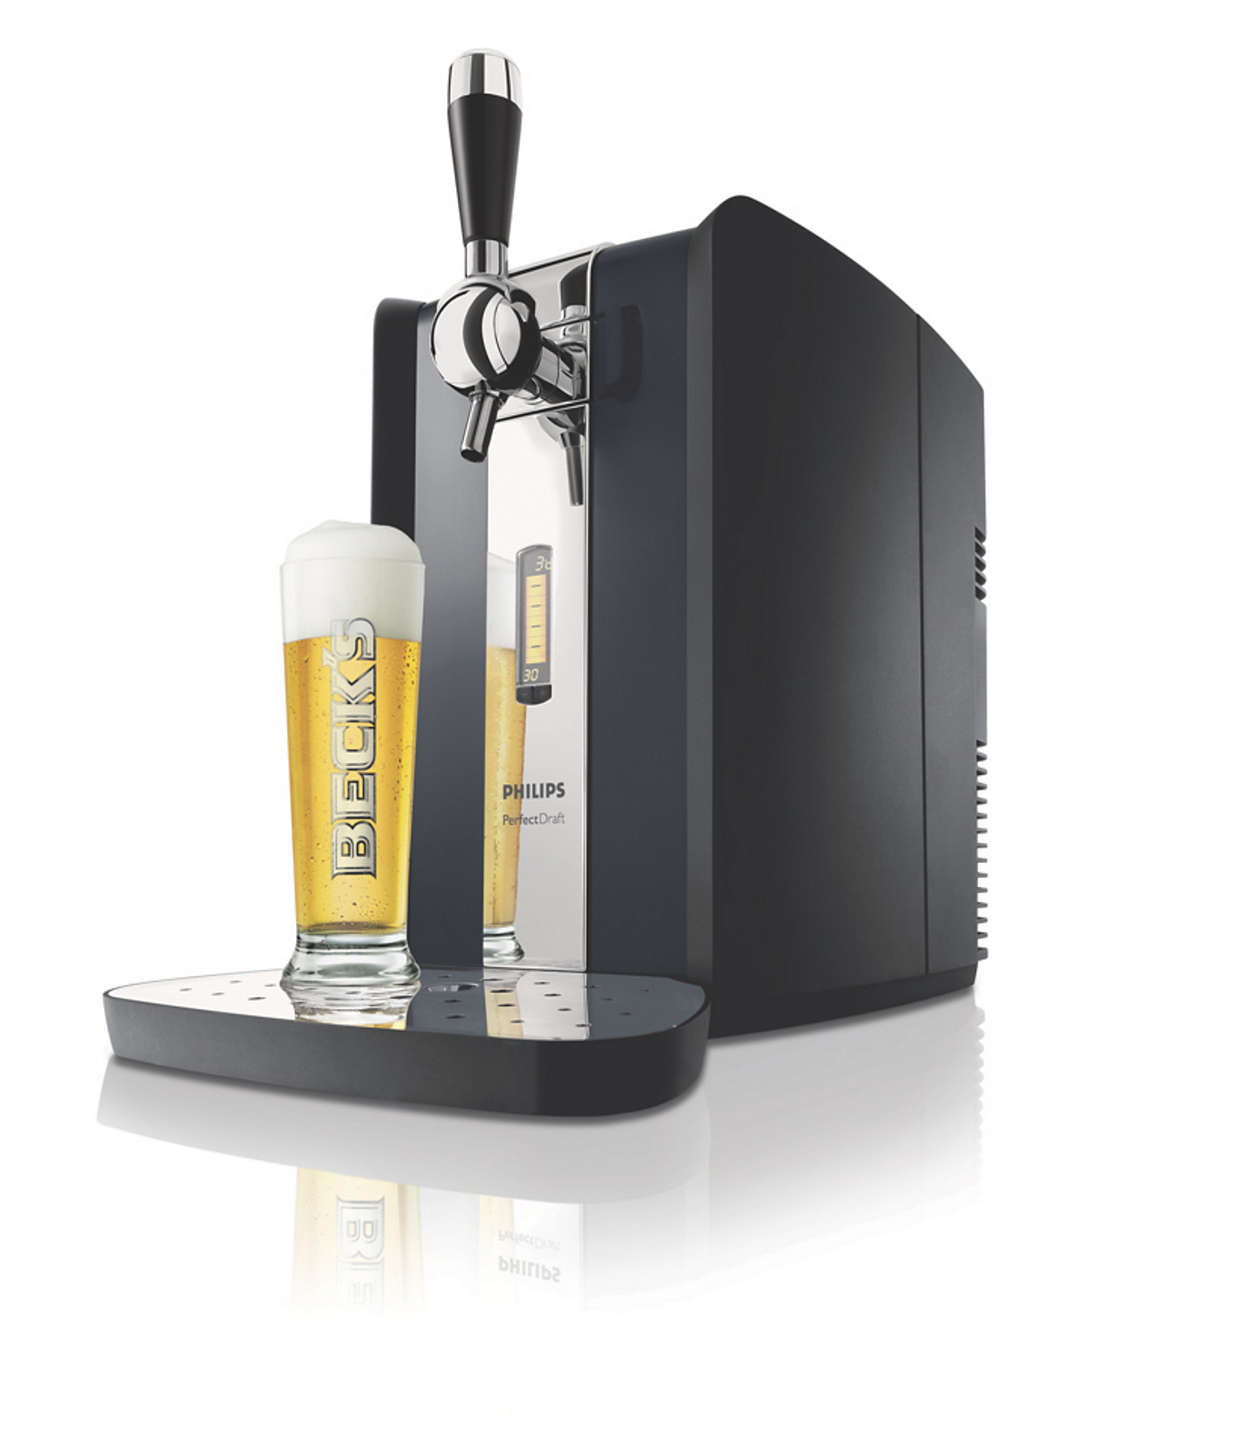 perfectdraft home draught system hd3620 20 philips